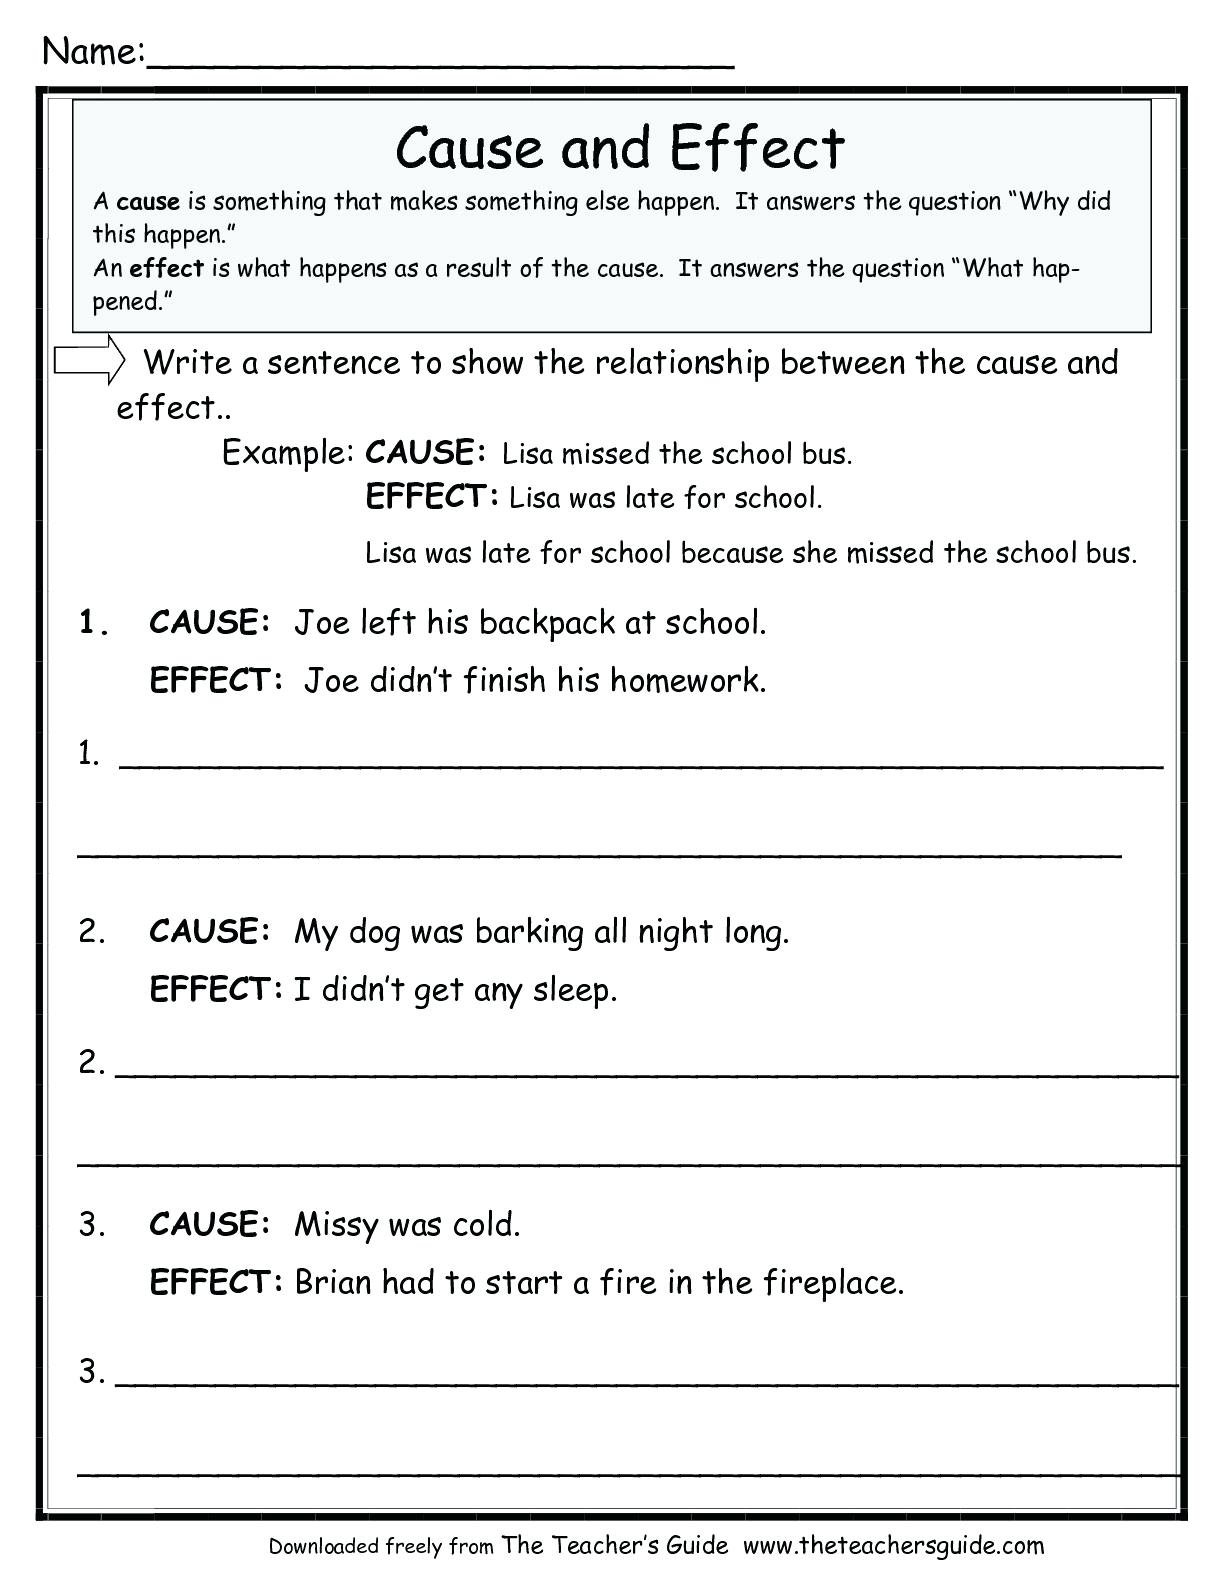 10 Most Recommended Free Printable Main Idea Worksheets kindergarten worksheet main ideas worksheets main idea worksheets 2020